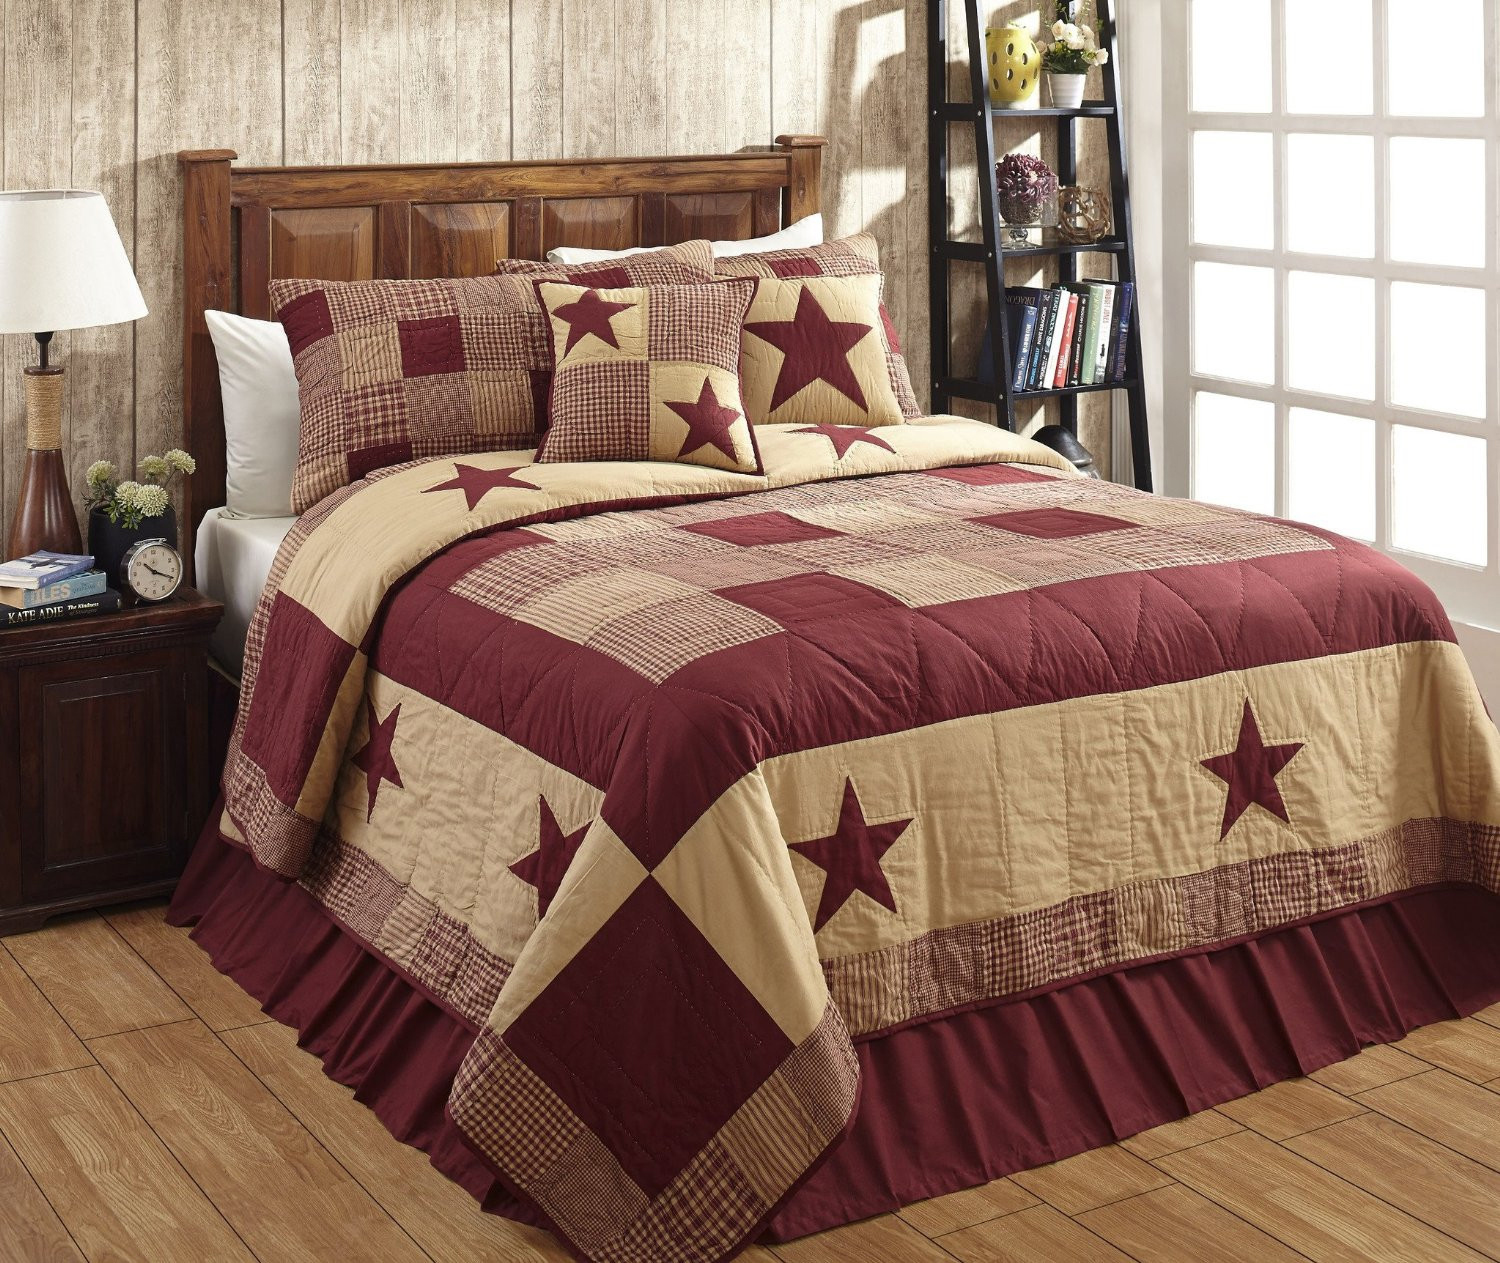 Jamestown Burgundy Amp Tan By Olivias Heartland Quilts